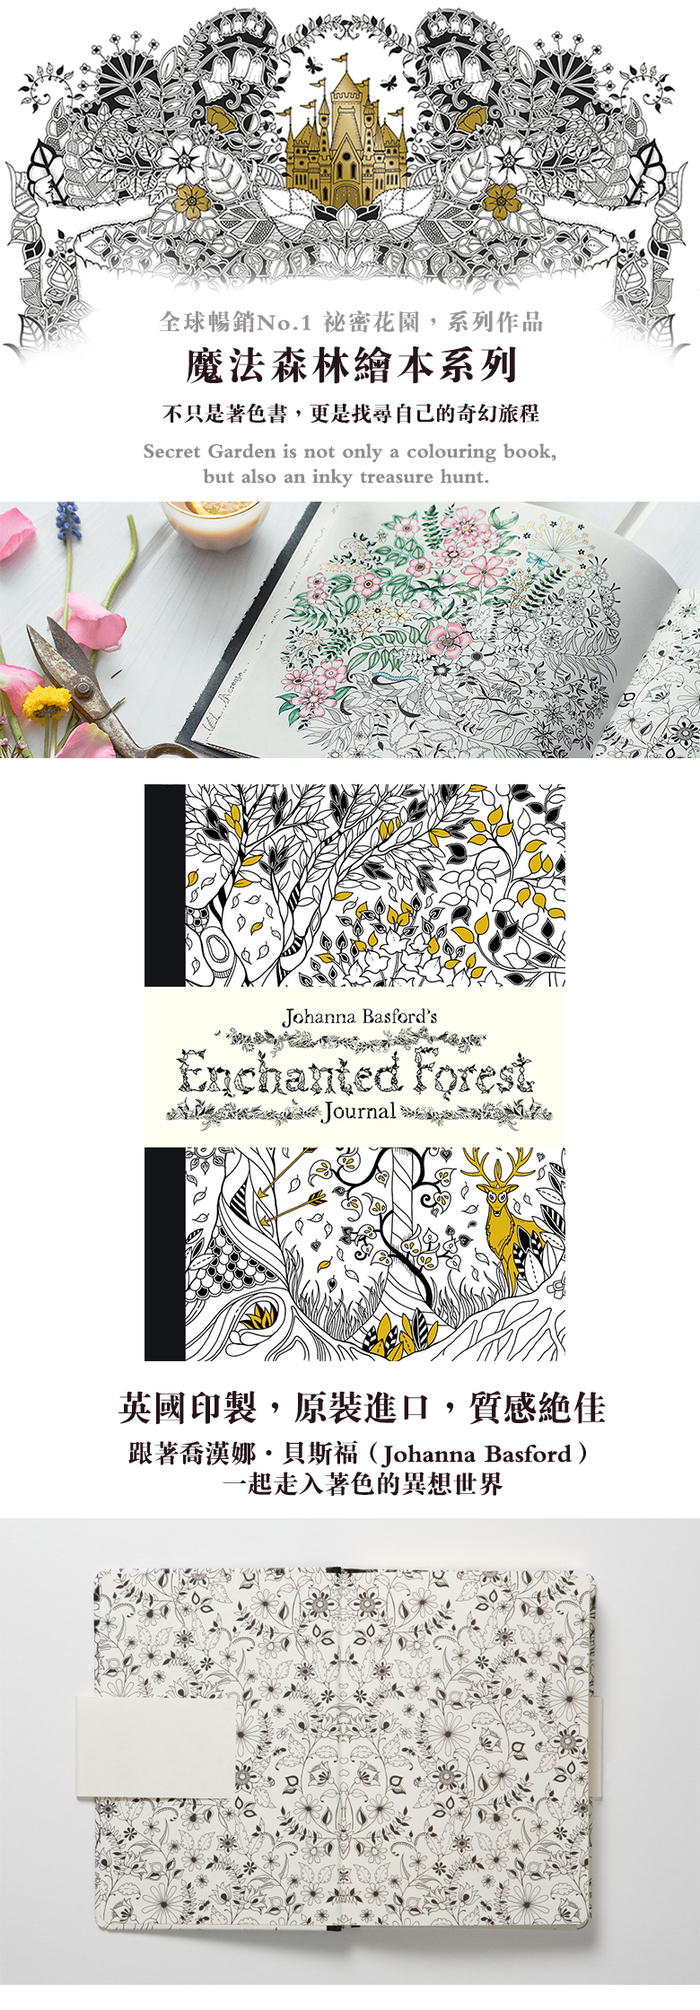 Laurence King Enchanted Forest 魔法森林 - 手繪筆記本 (A5)